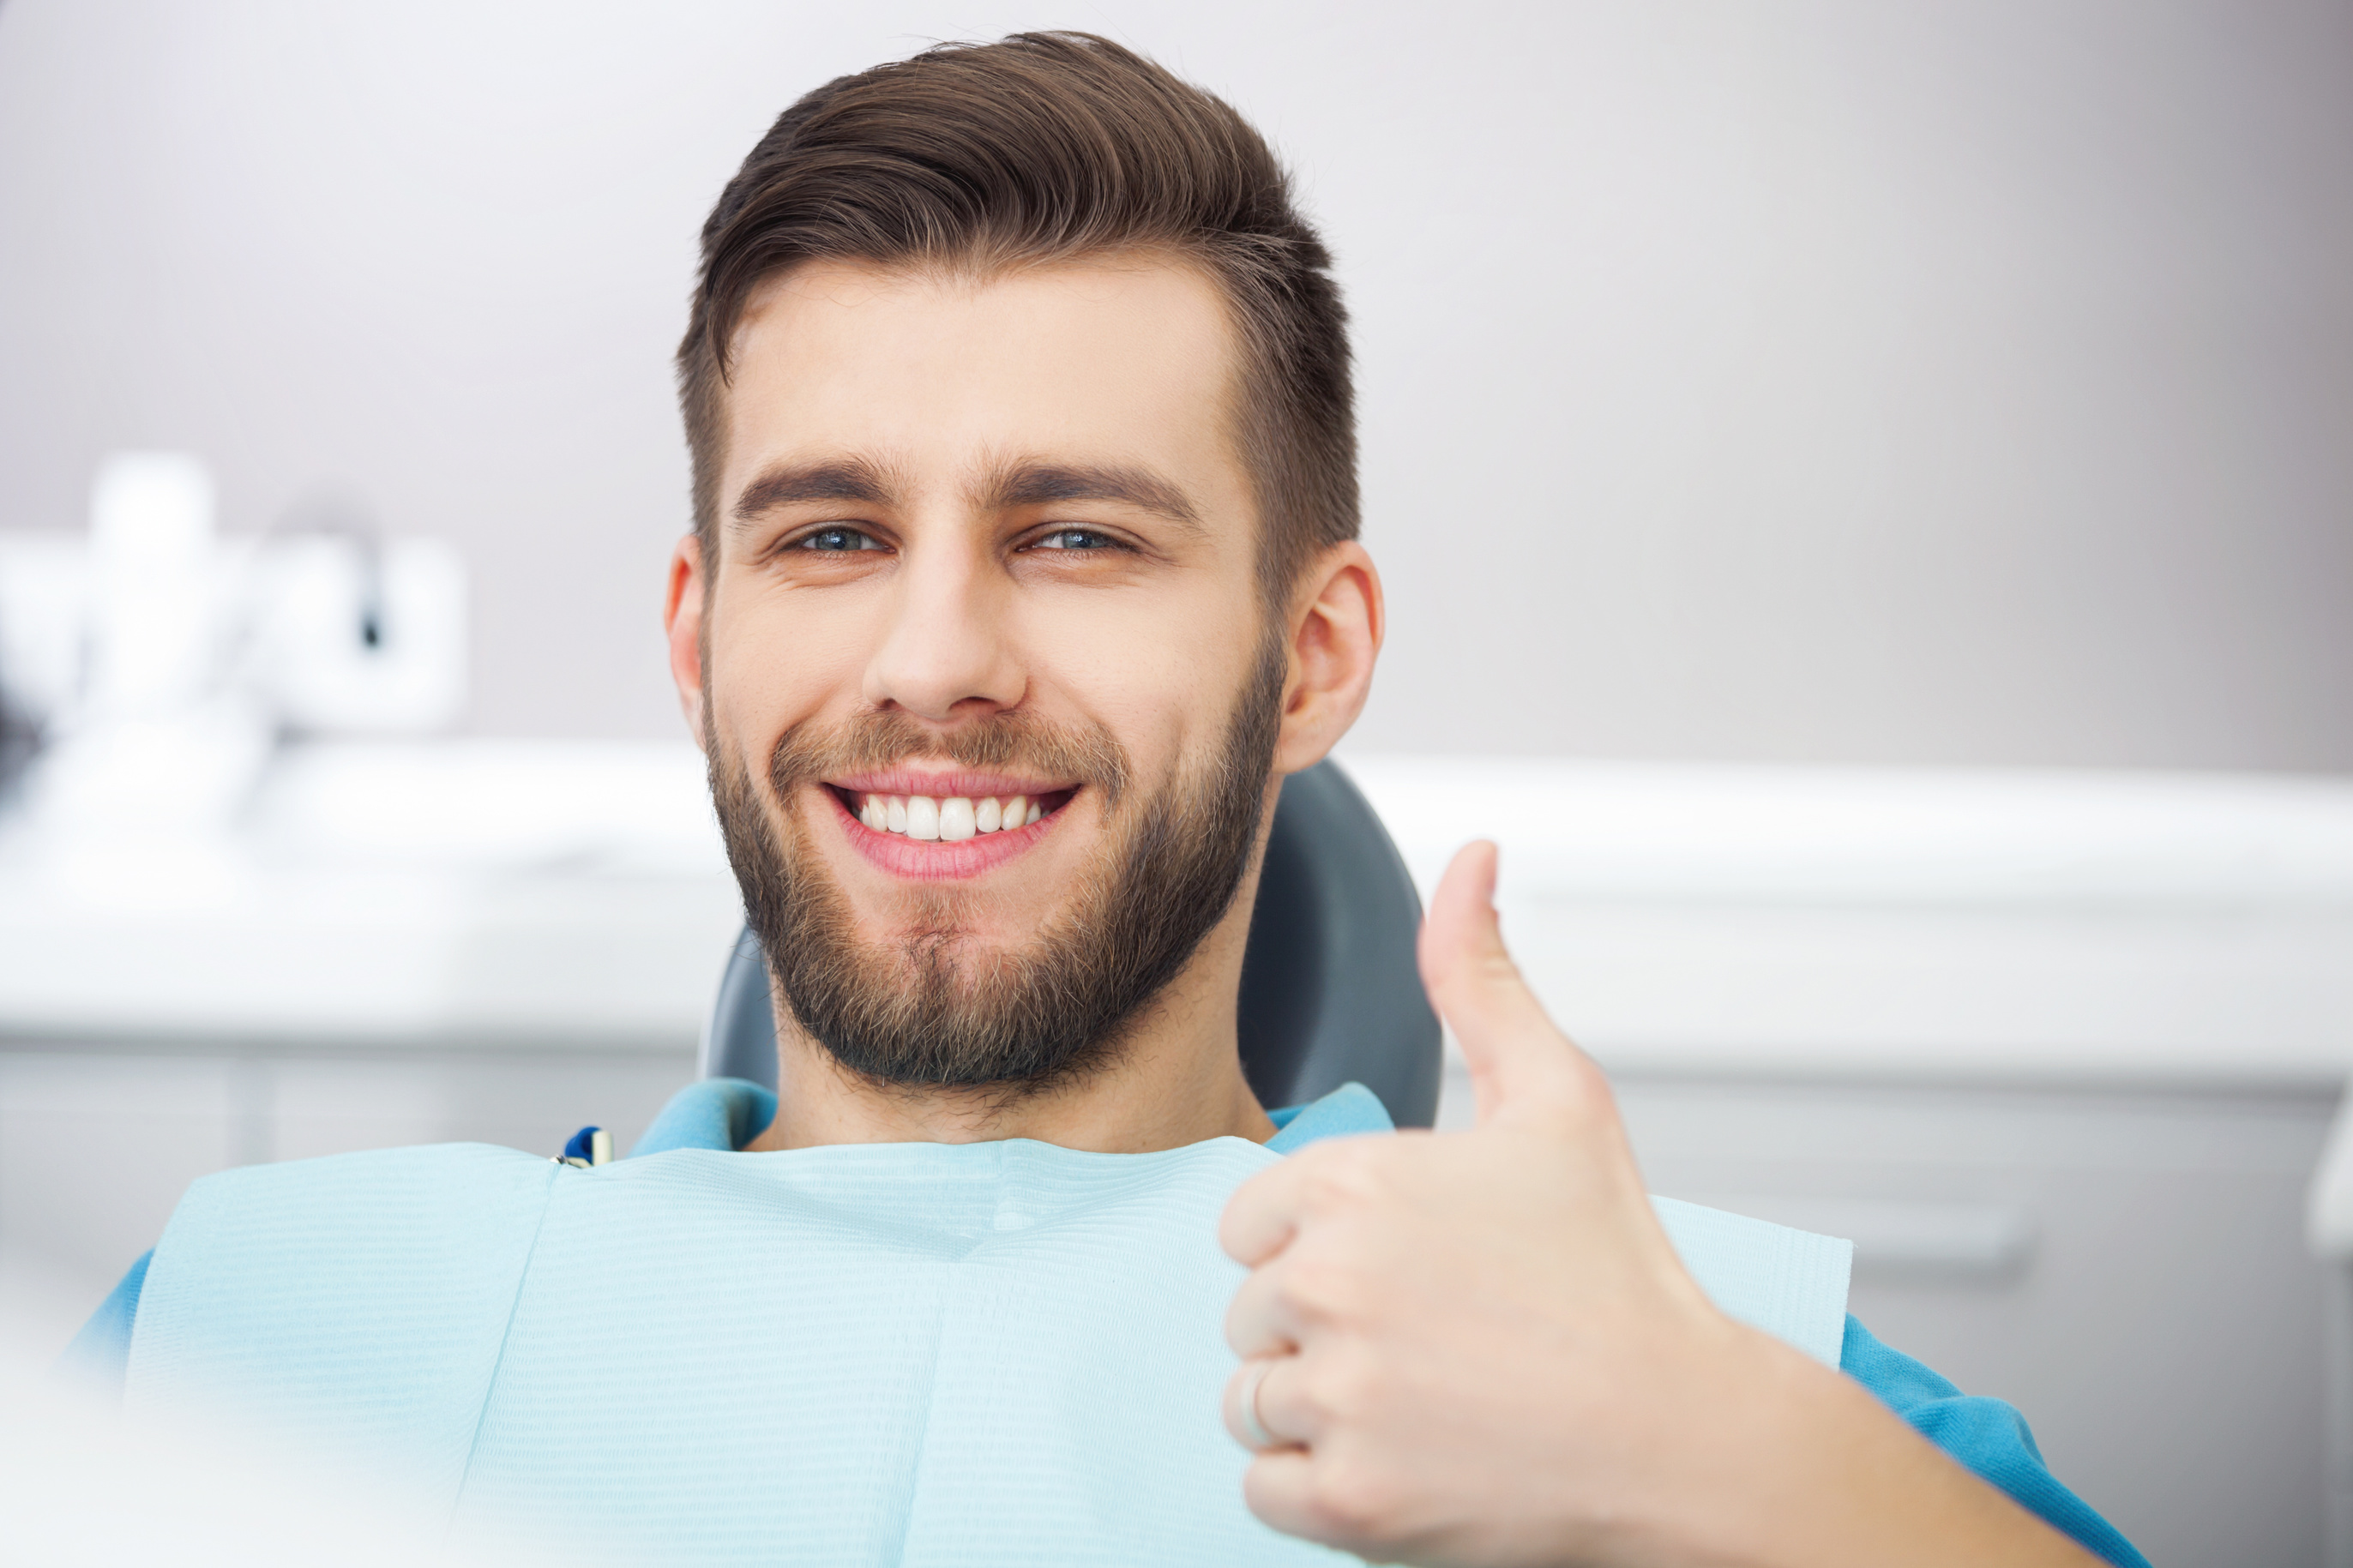 Where can I find Lincoln Park root canal treatment?